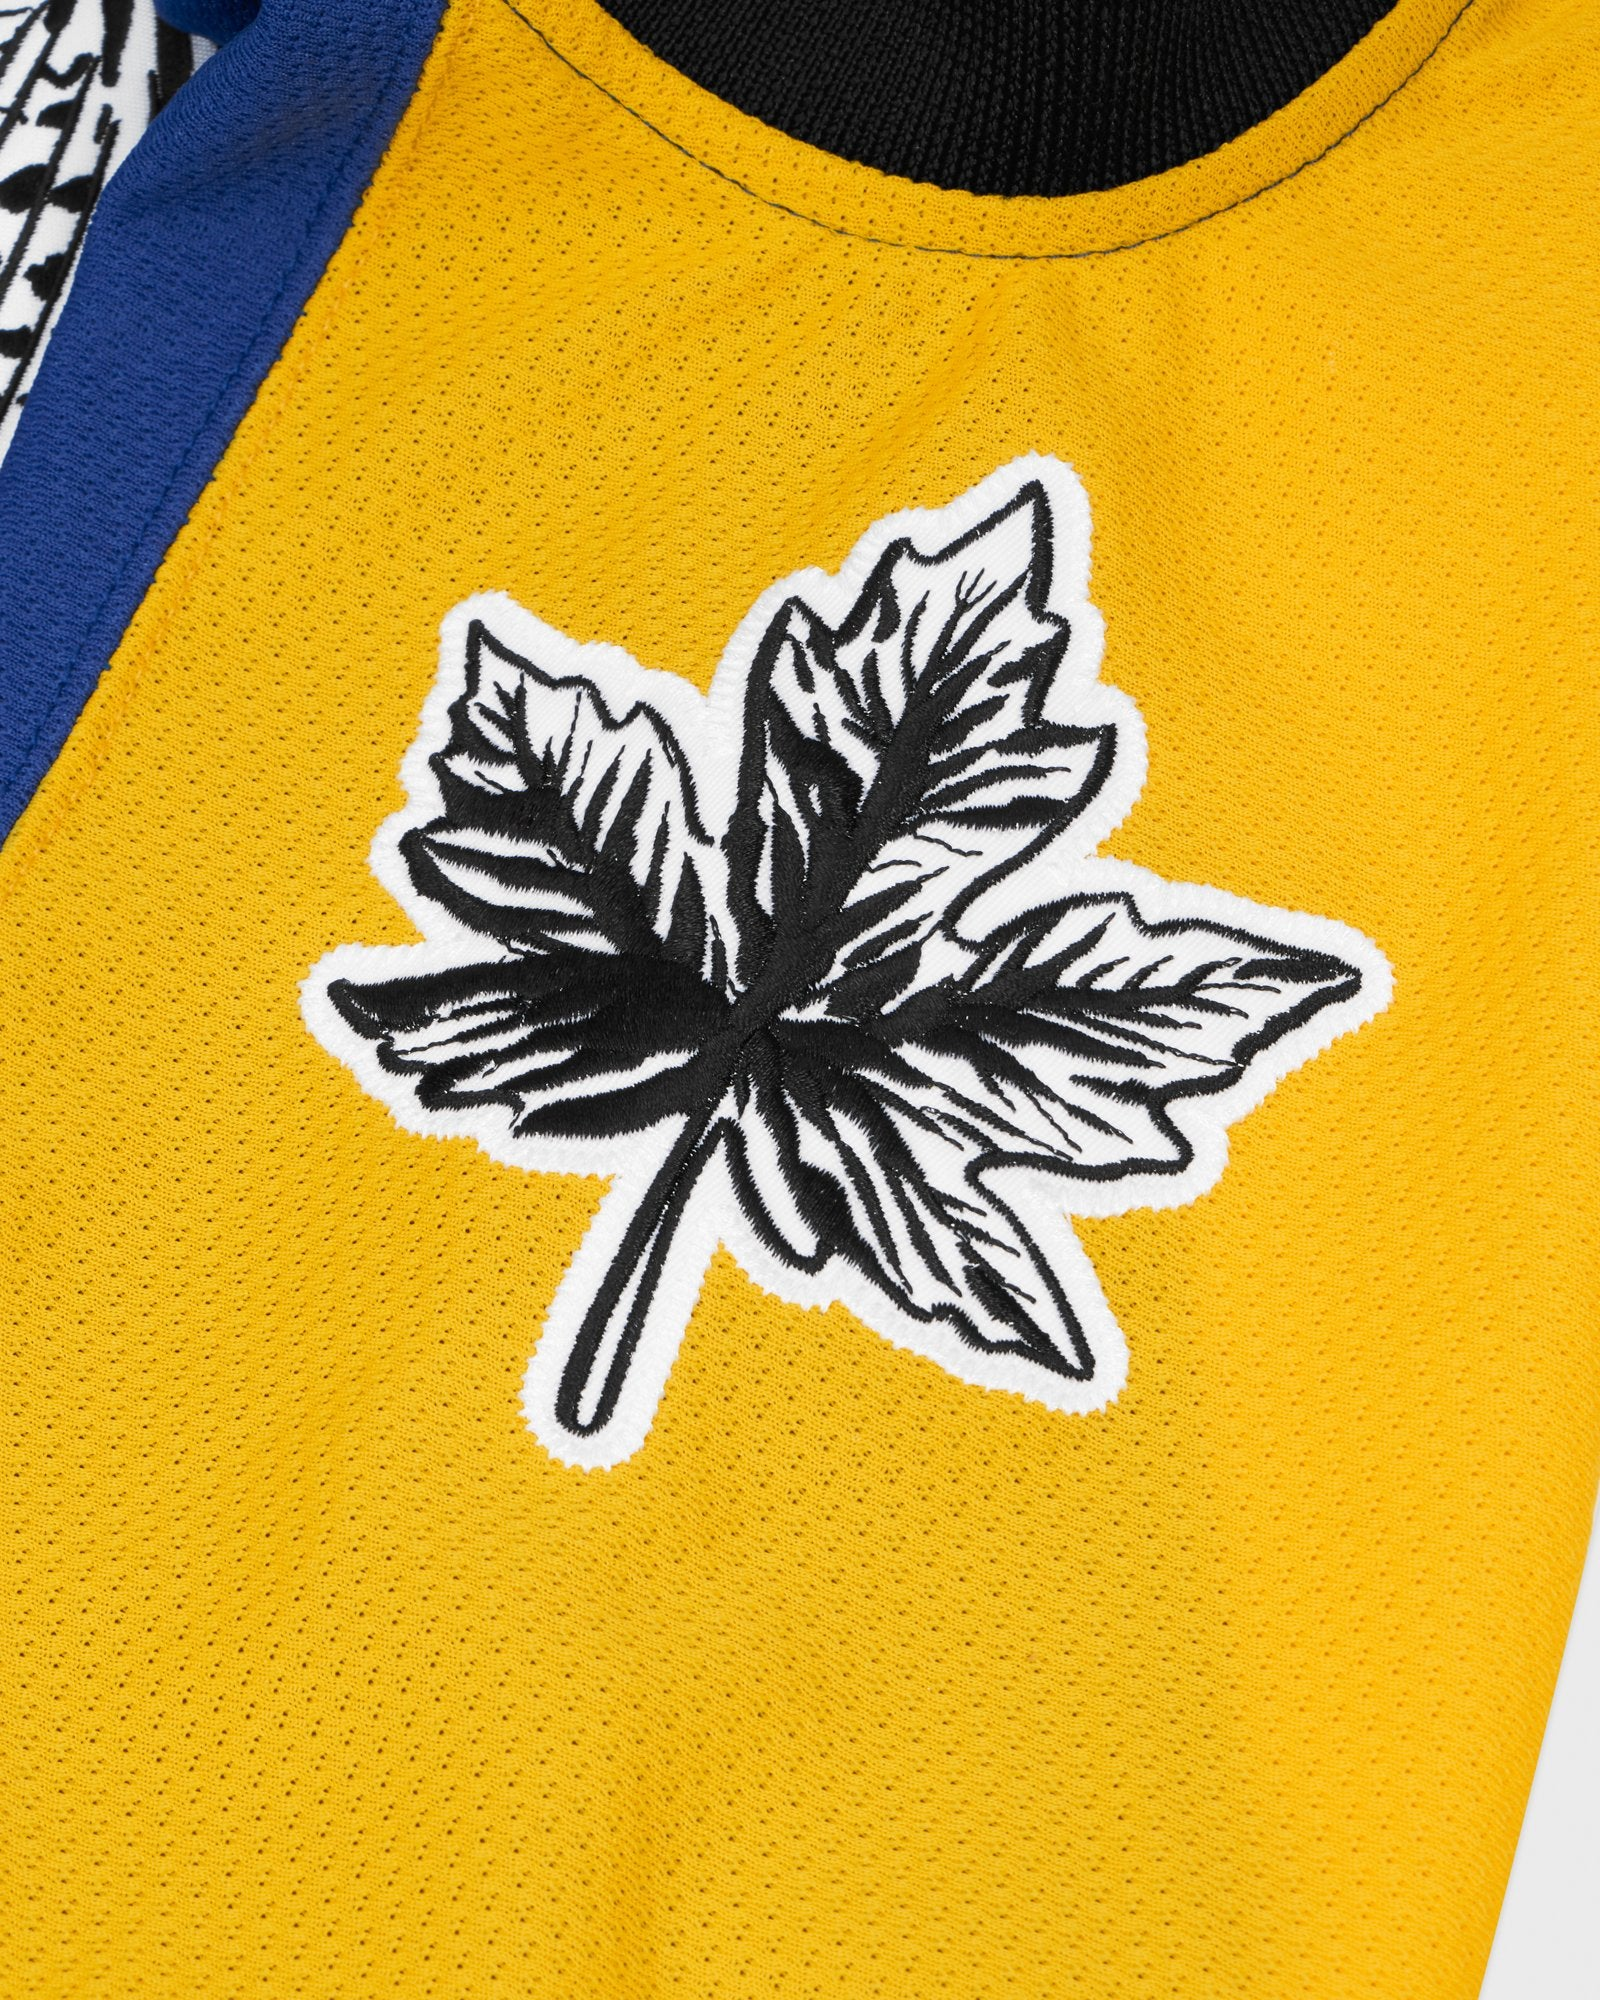 BIRD OF PREY HOCKEY JERSEY - ROYAL BLUE IMAGE #6